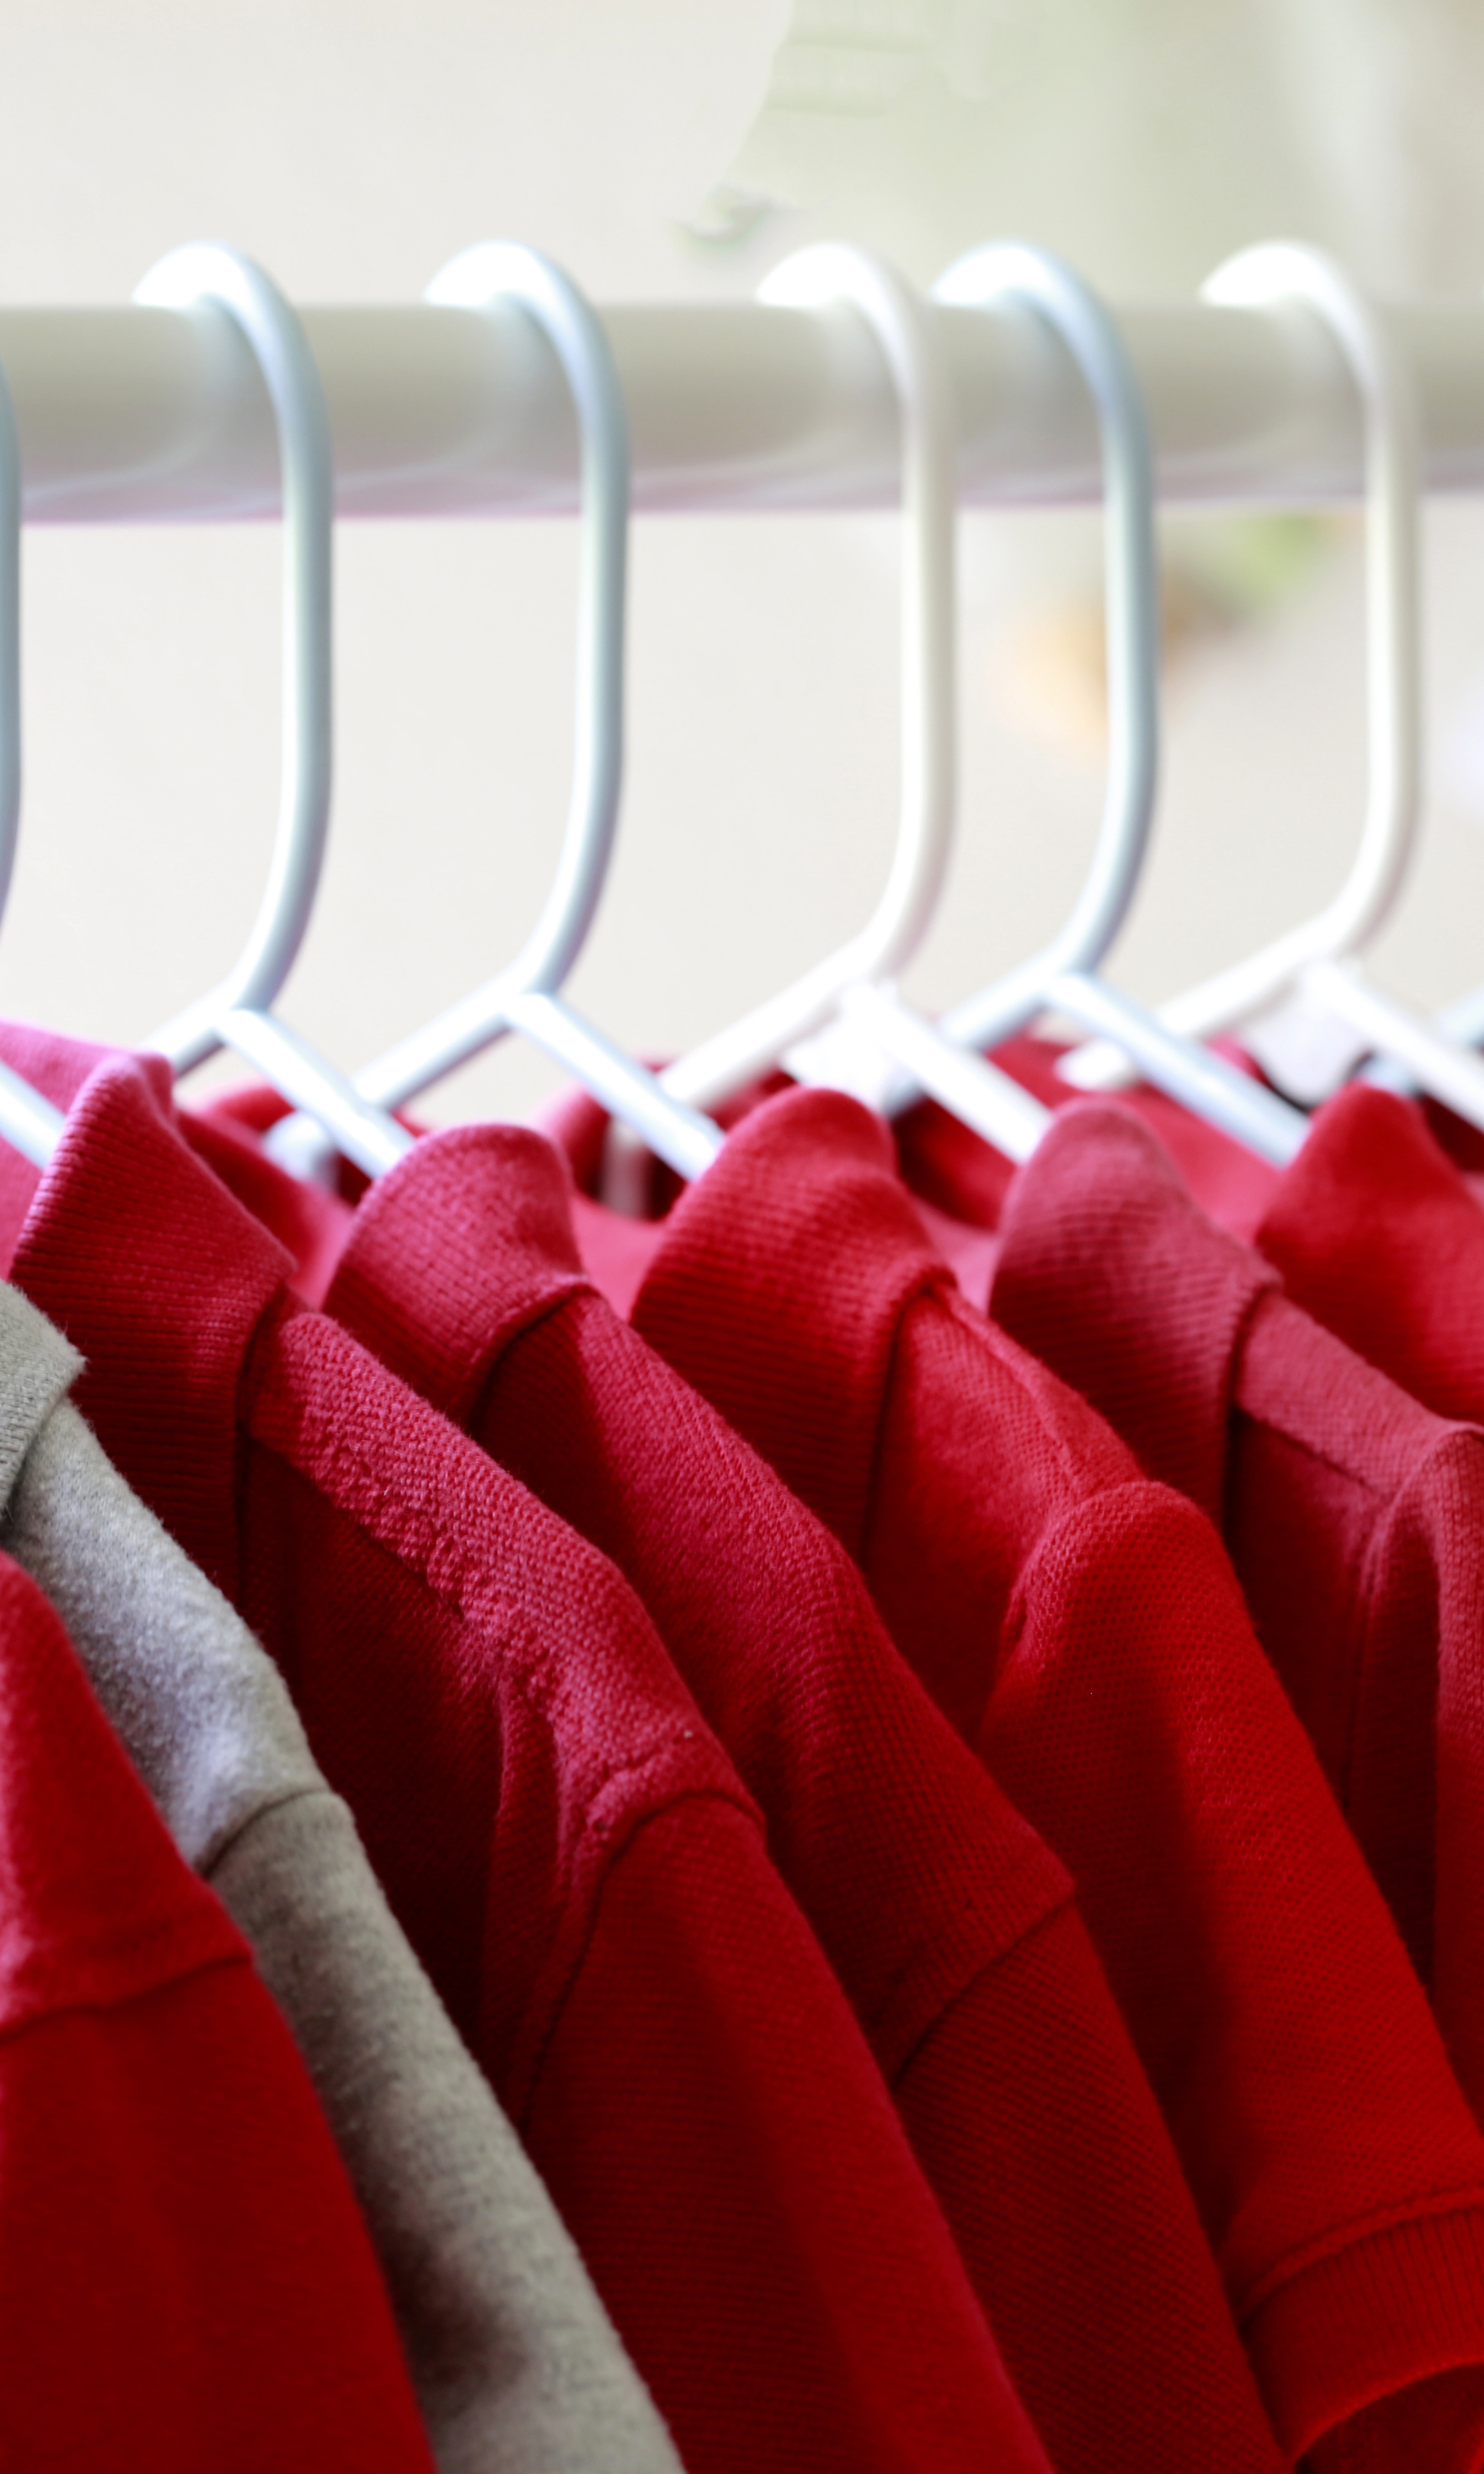 Requiring Public School Uniforms May Infringe on Students' First Amendment Rights